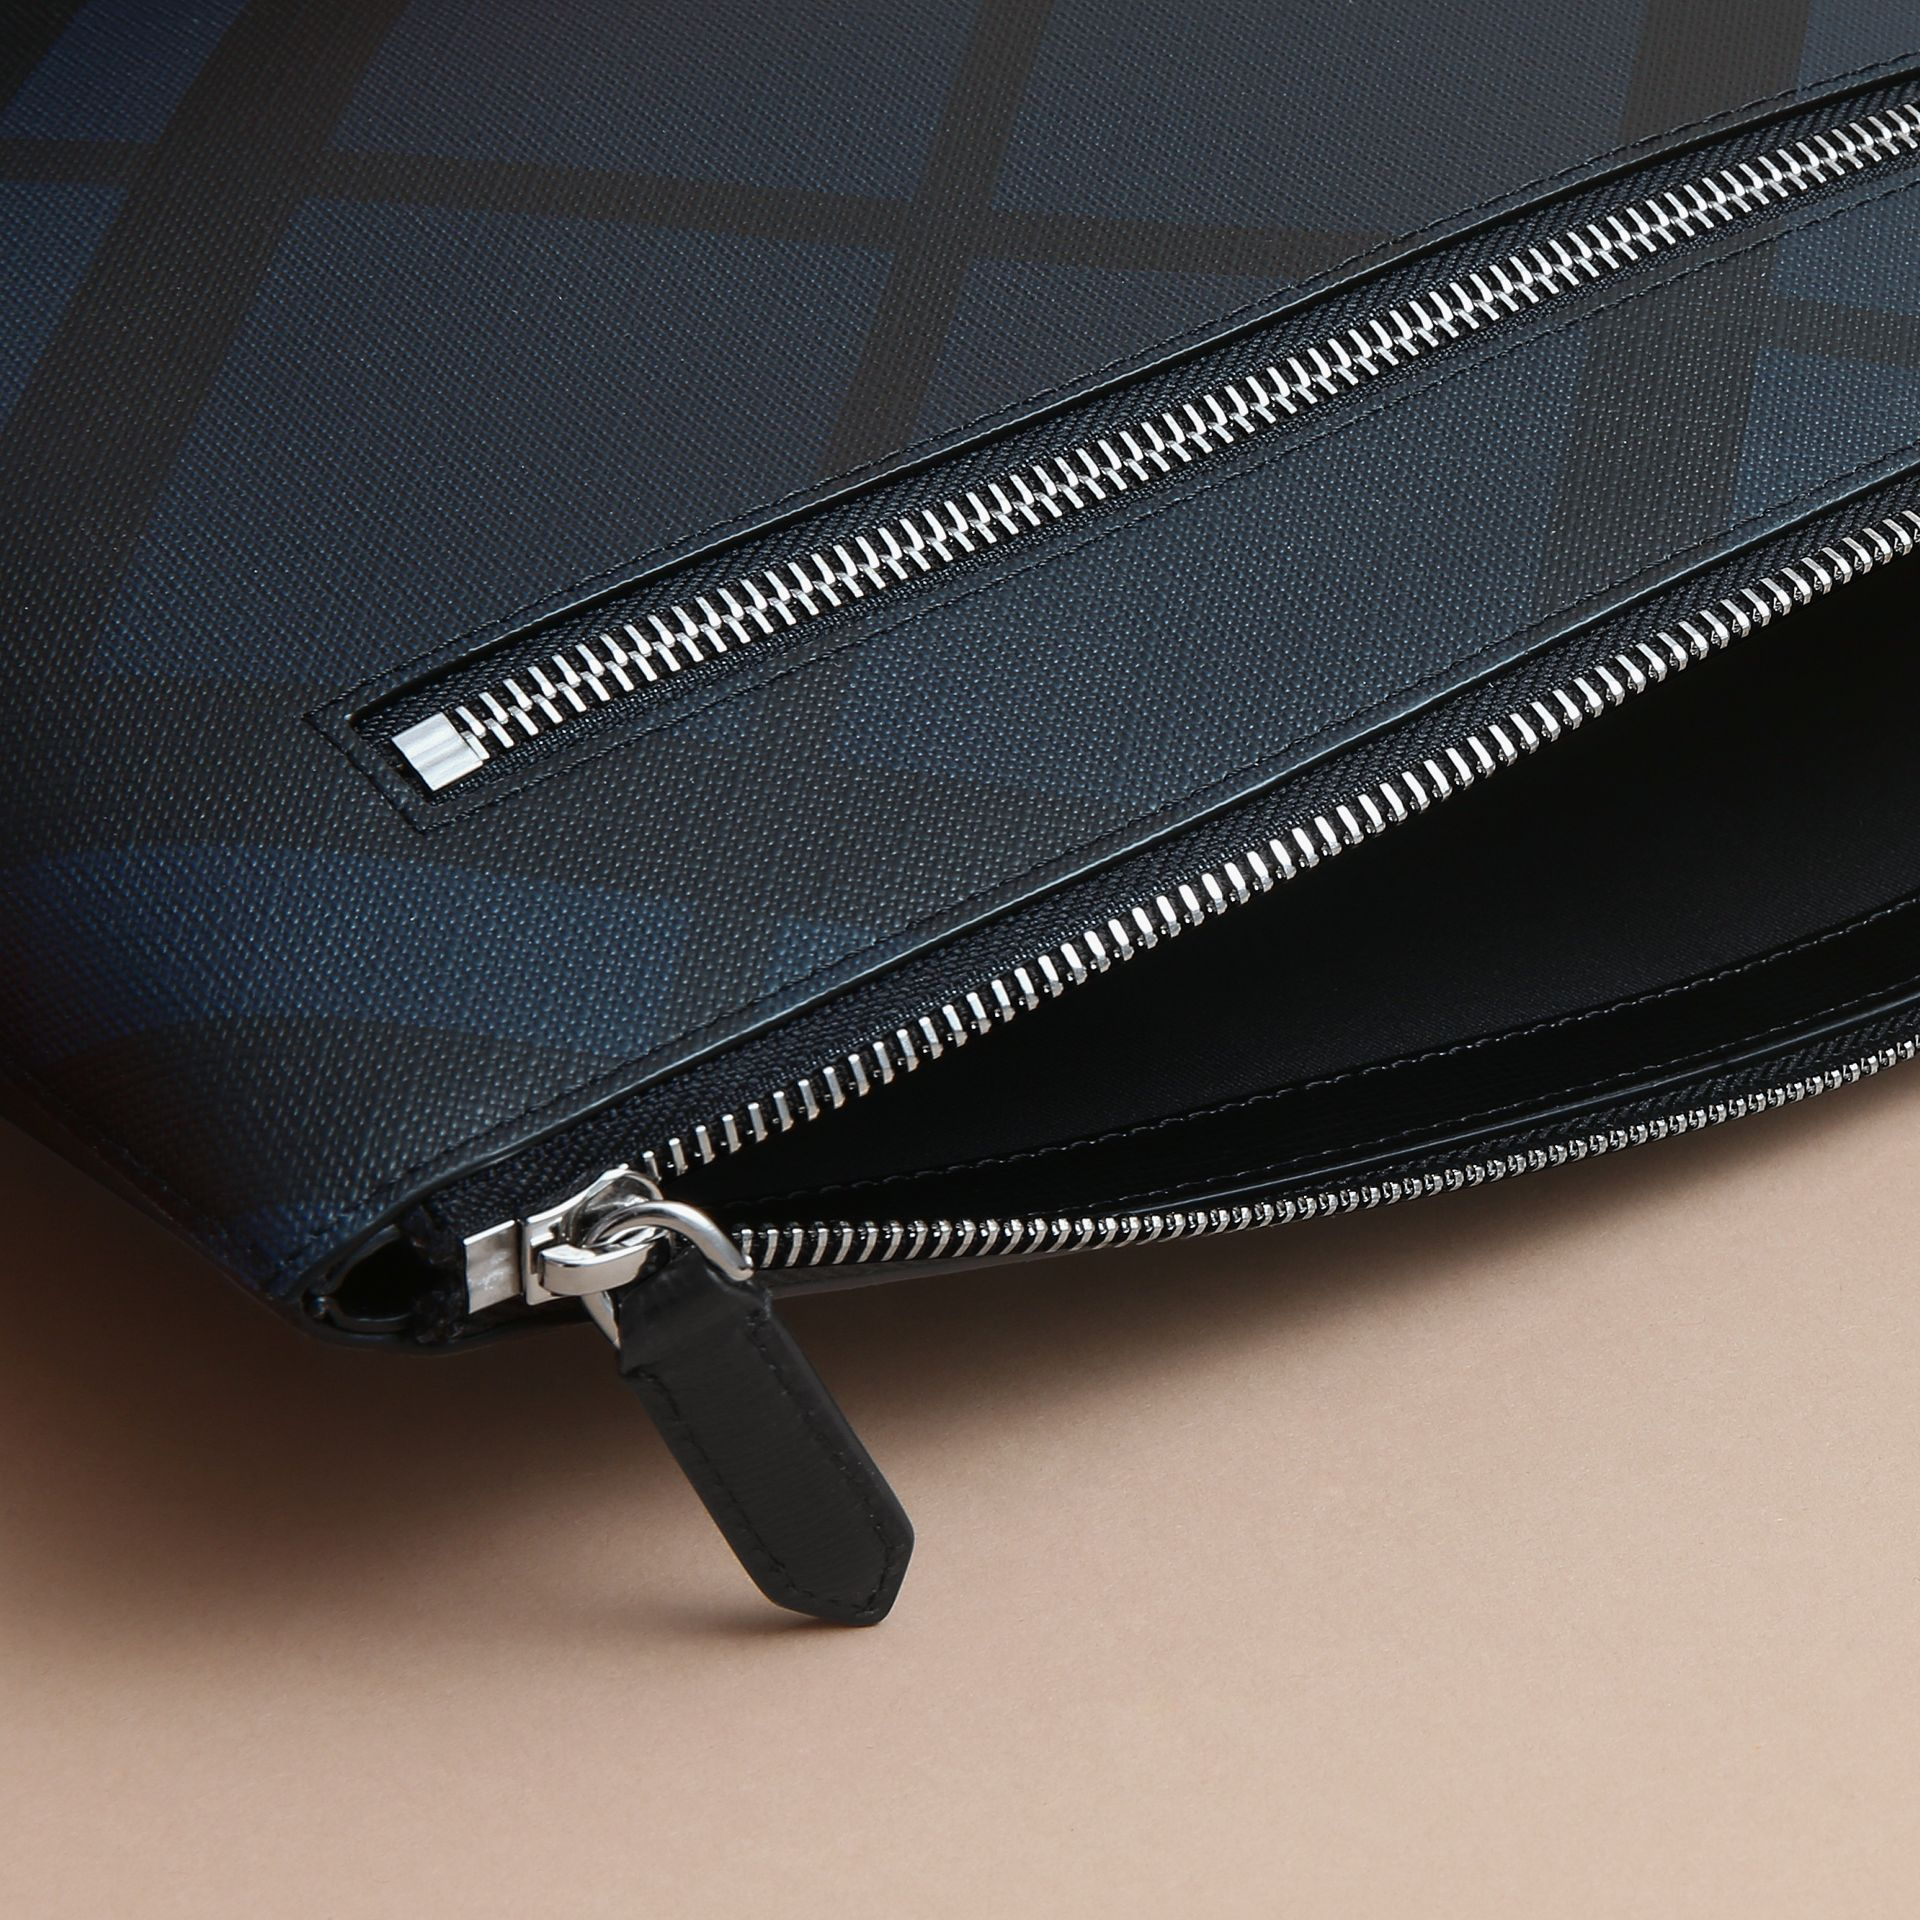 Large London Check Zip Pouch in Navy/black - Men | Burberry Australia - gallery image 5